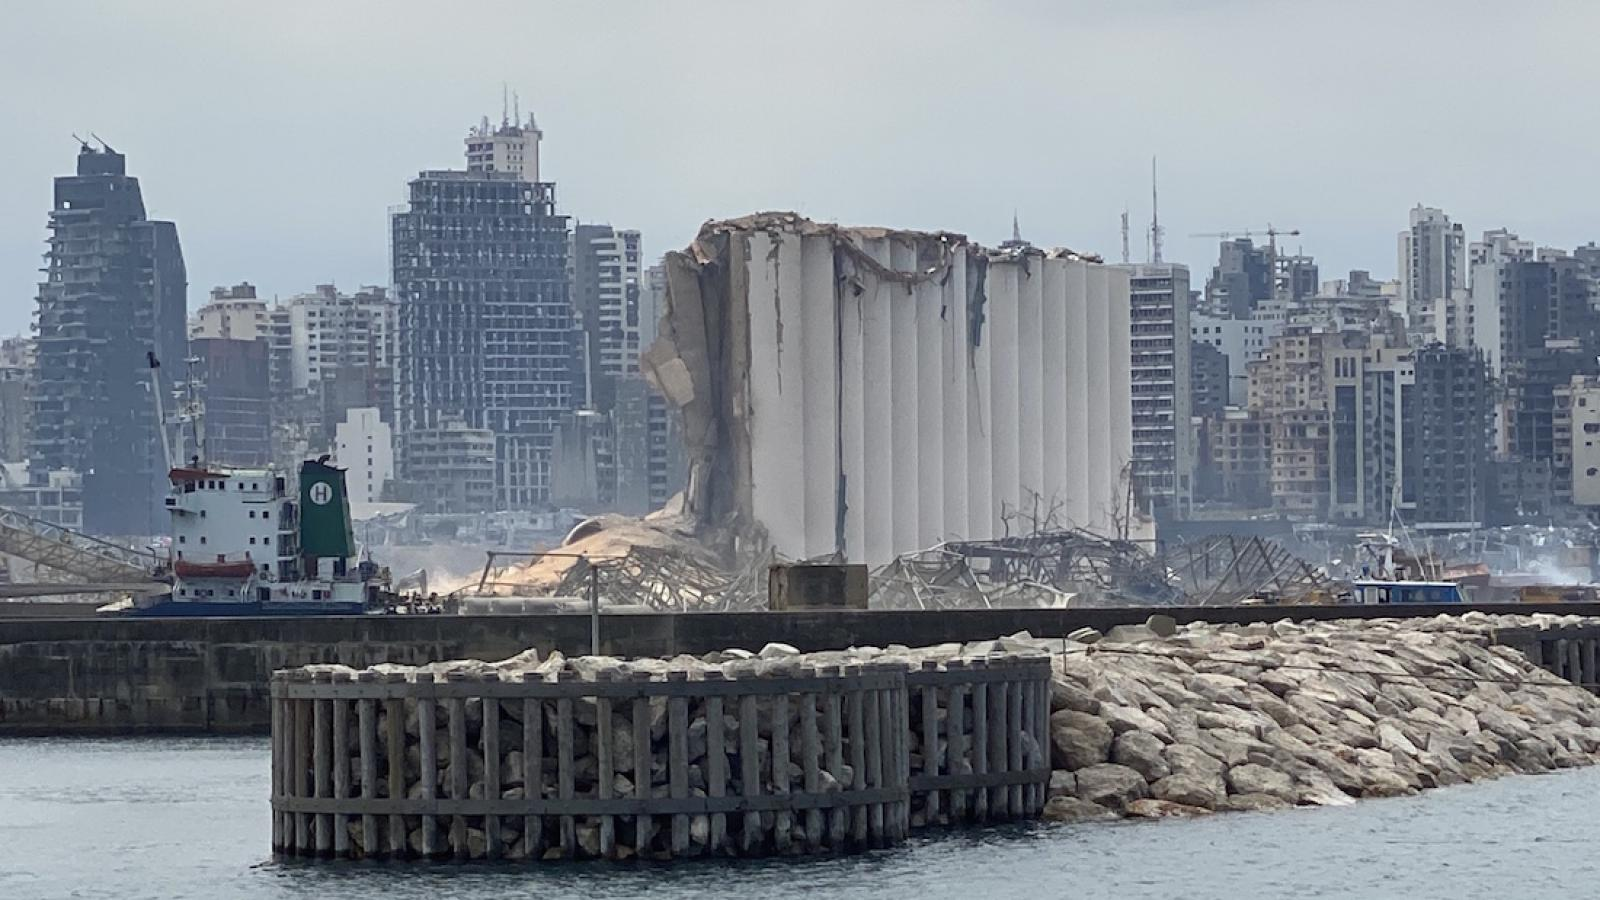 Beirut's grain silos were at the epicenter of the August 4 explosion at the port and had a capacity of 120,000 tons of grain. Beirut, Lebanon. August 6, 2020. (Zein Jaafar/The Public Source)